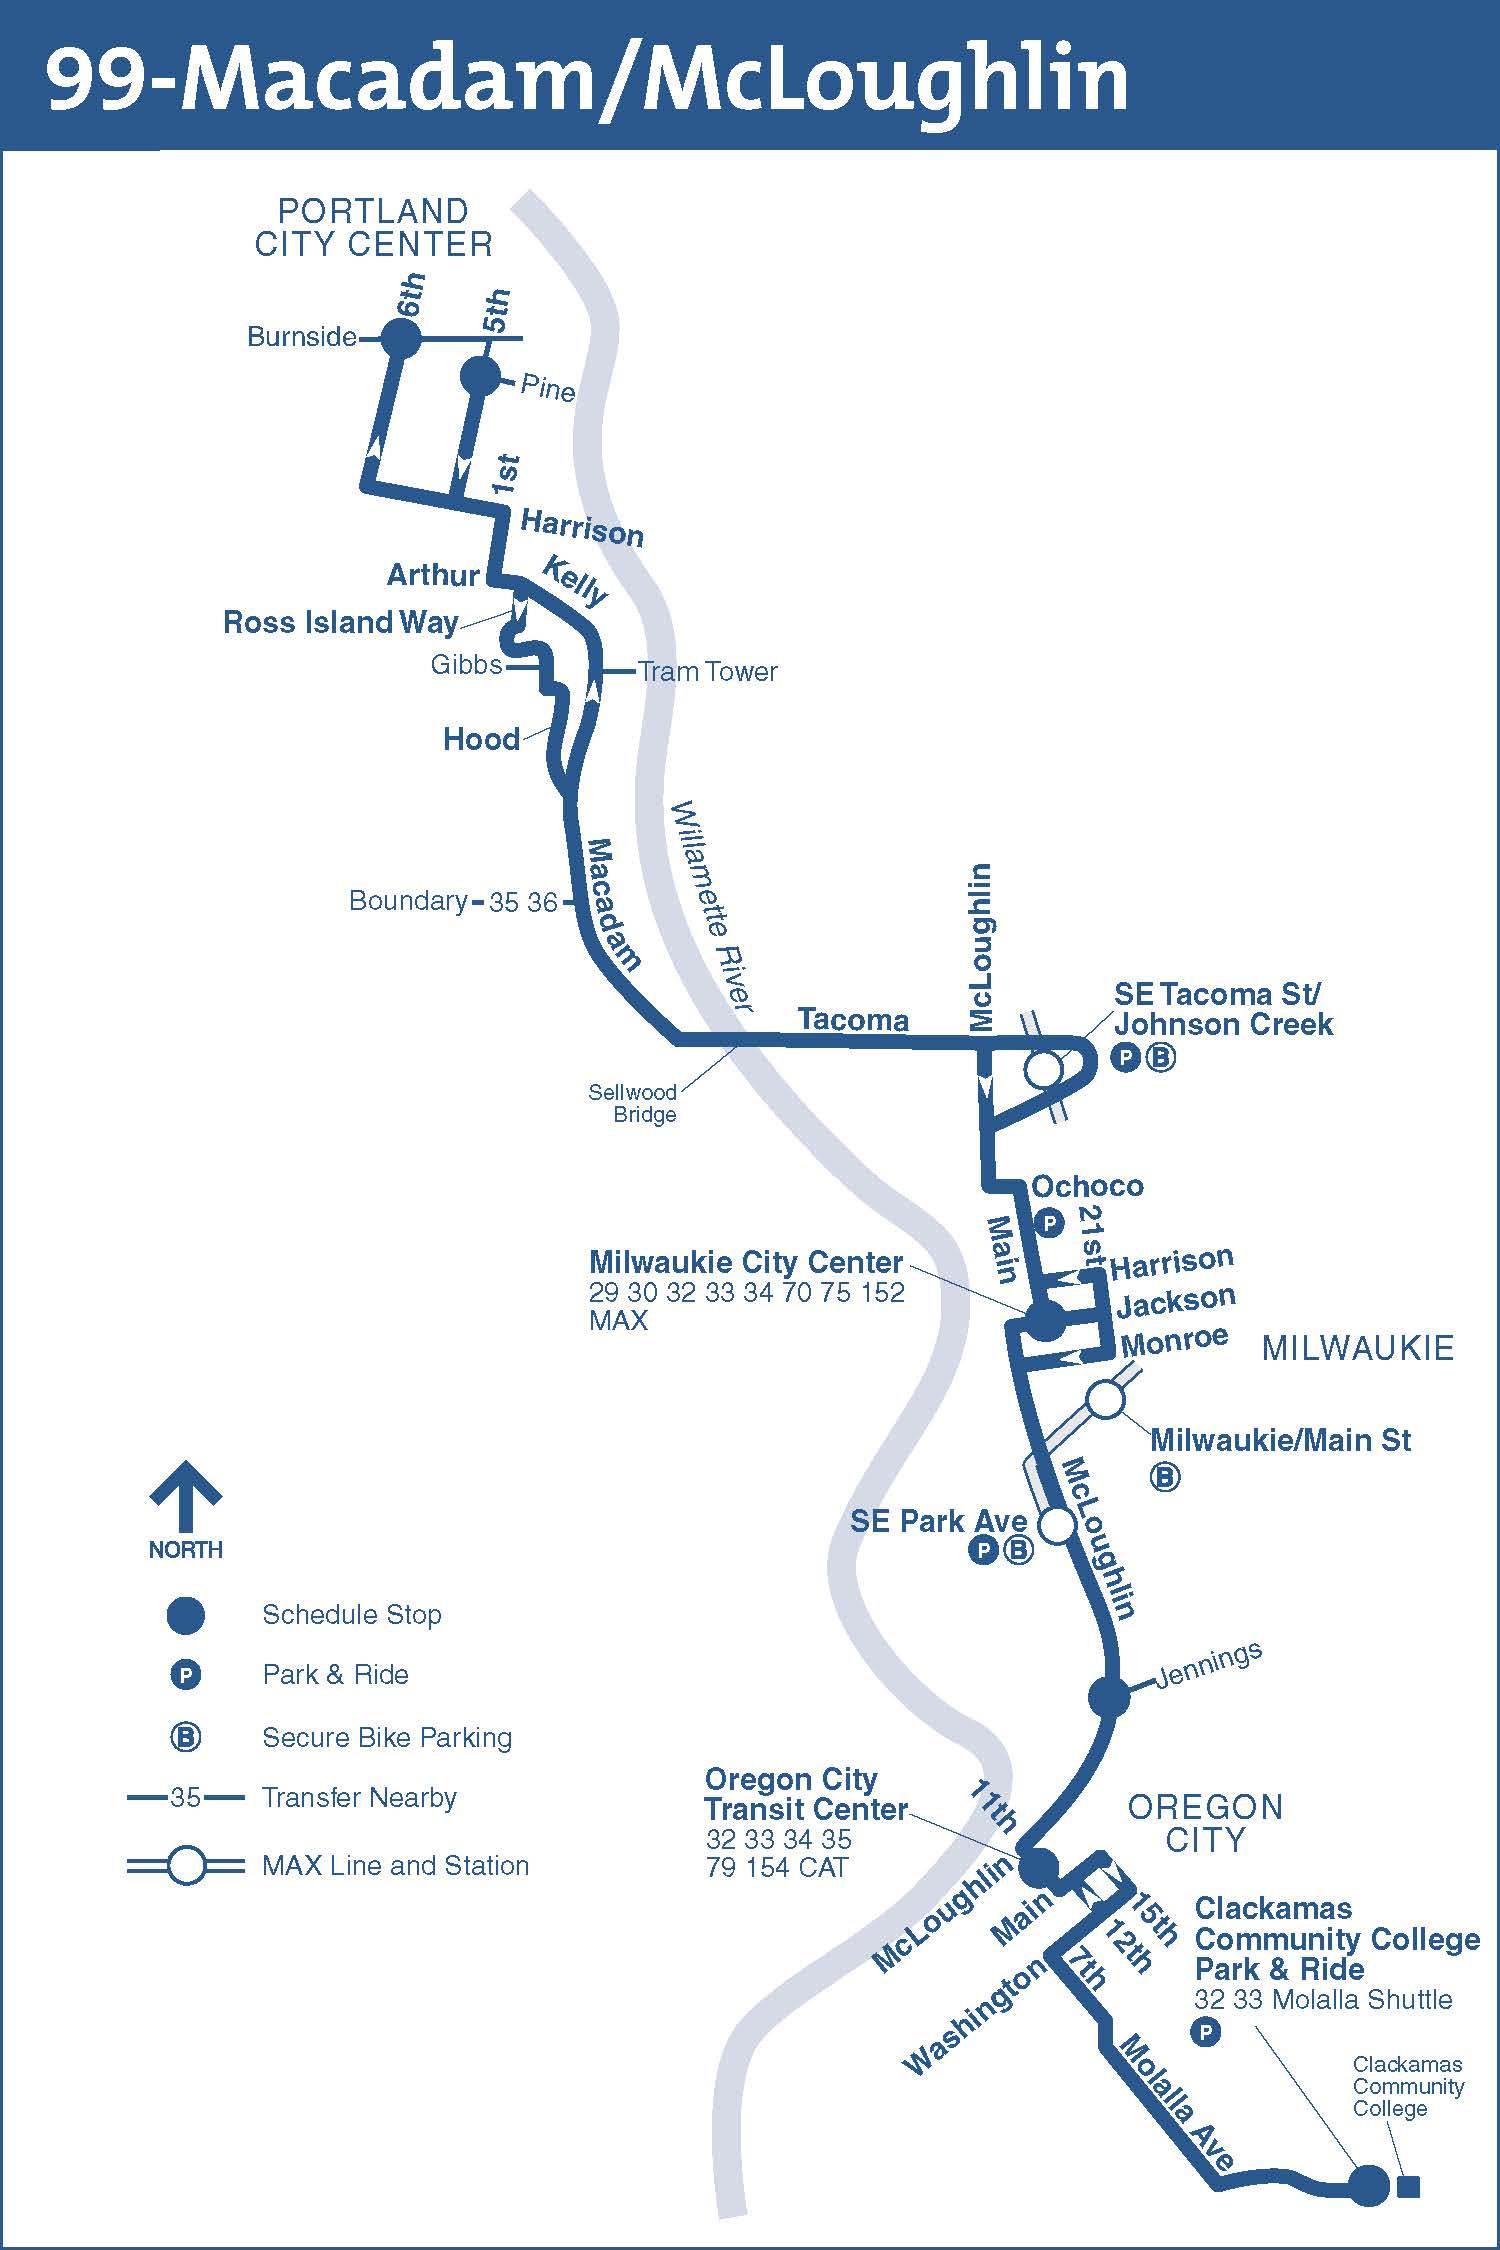 TriMet bus service returns to Sellwood Bridge in December after 12 on